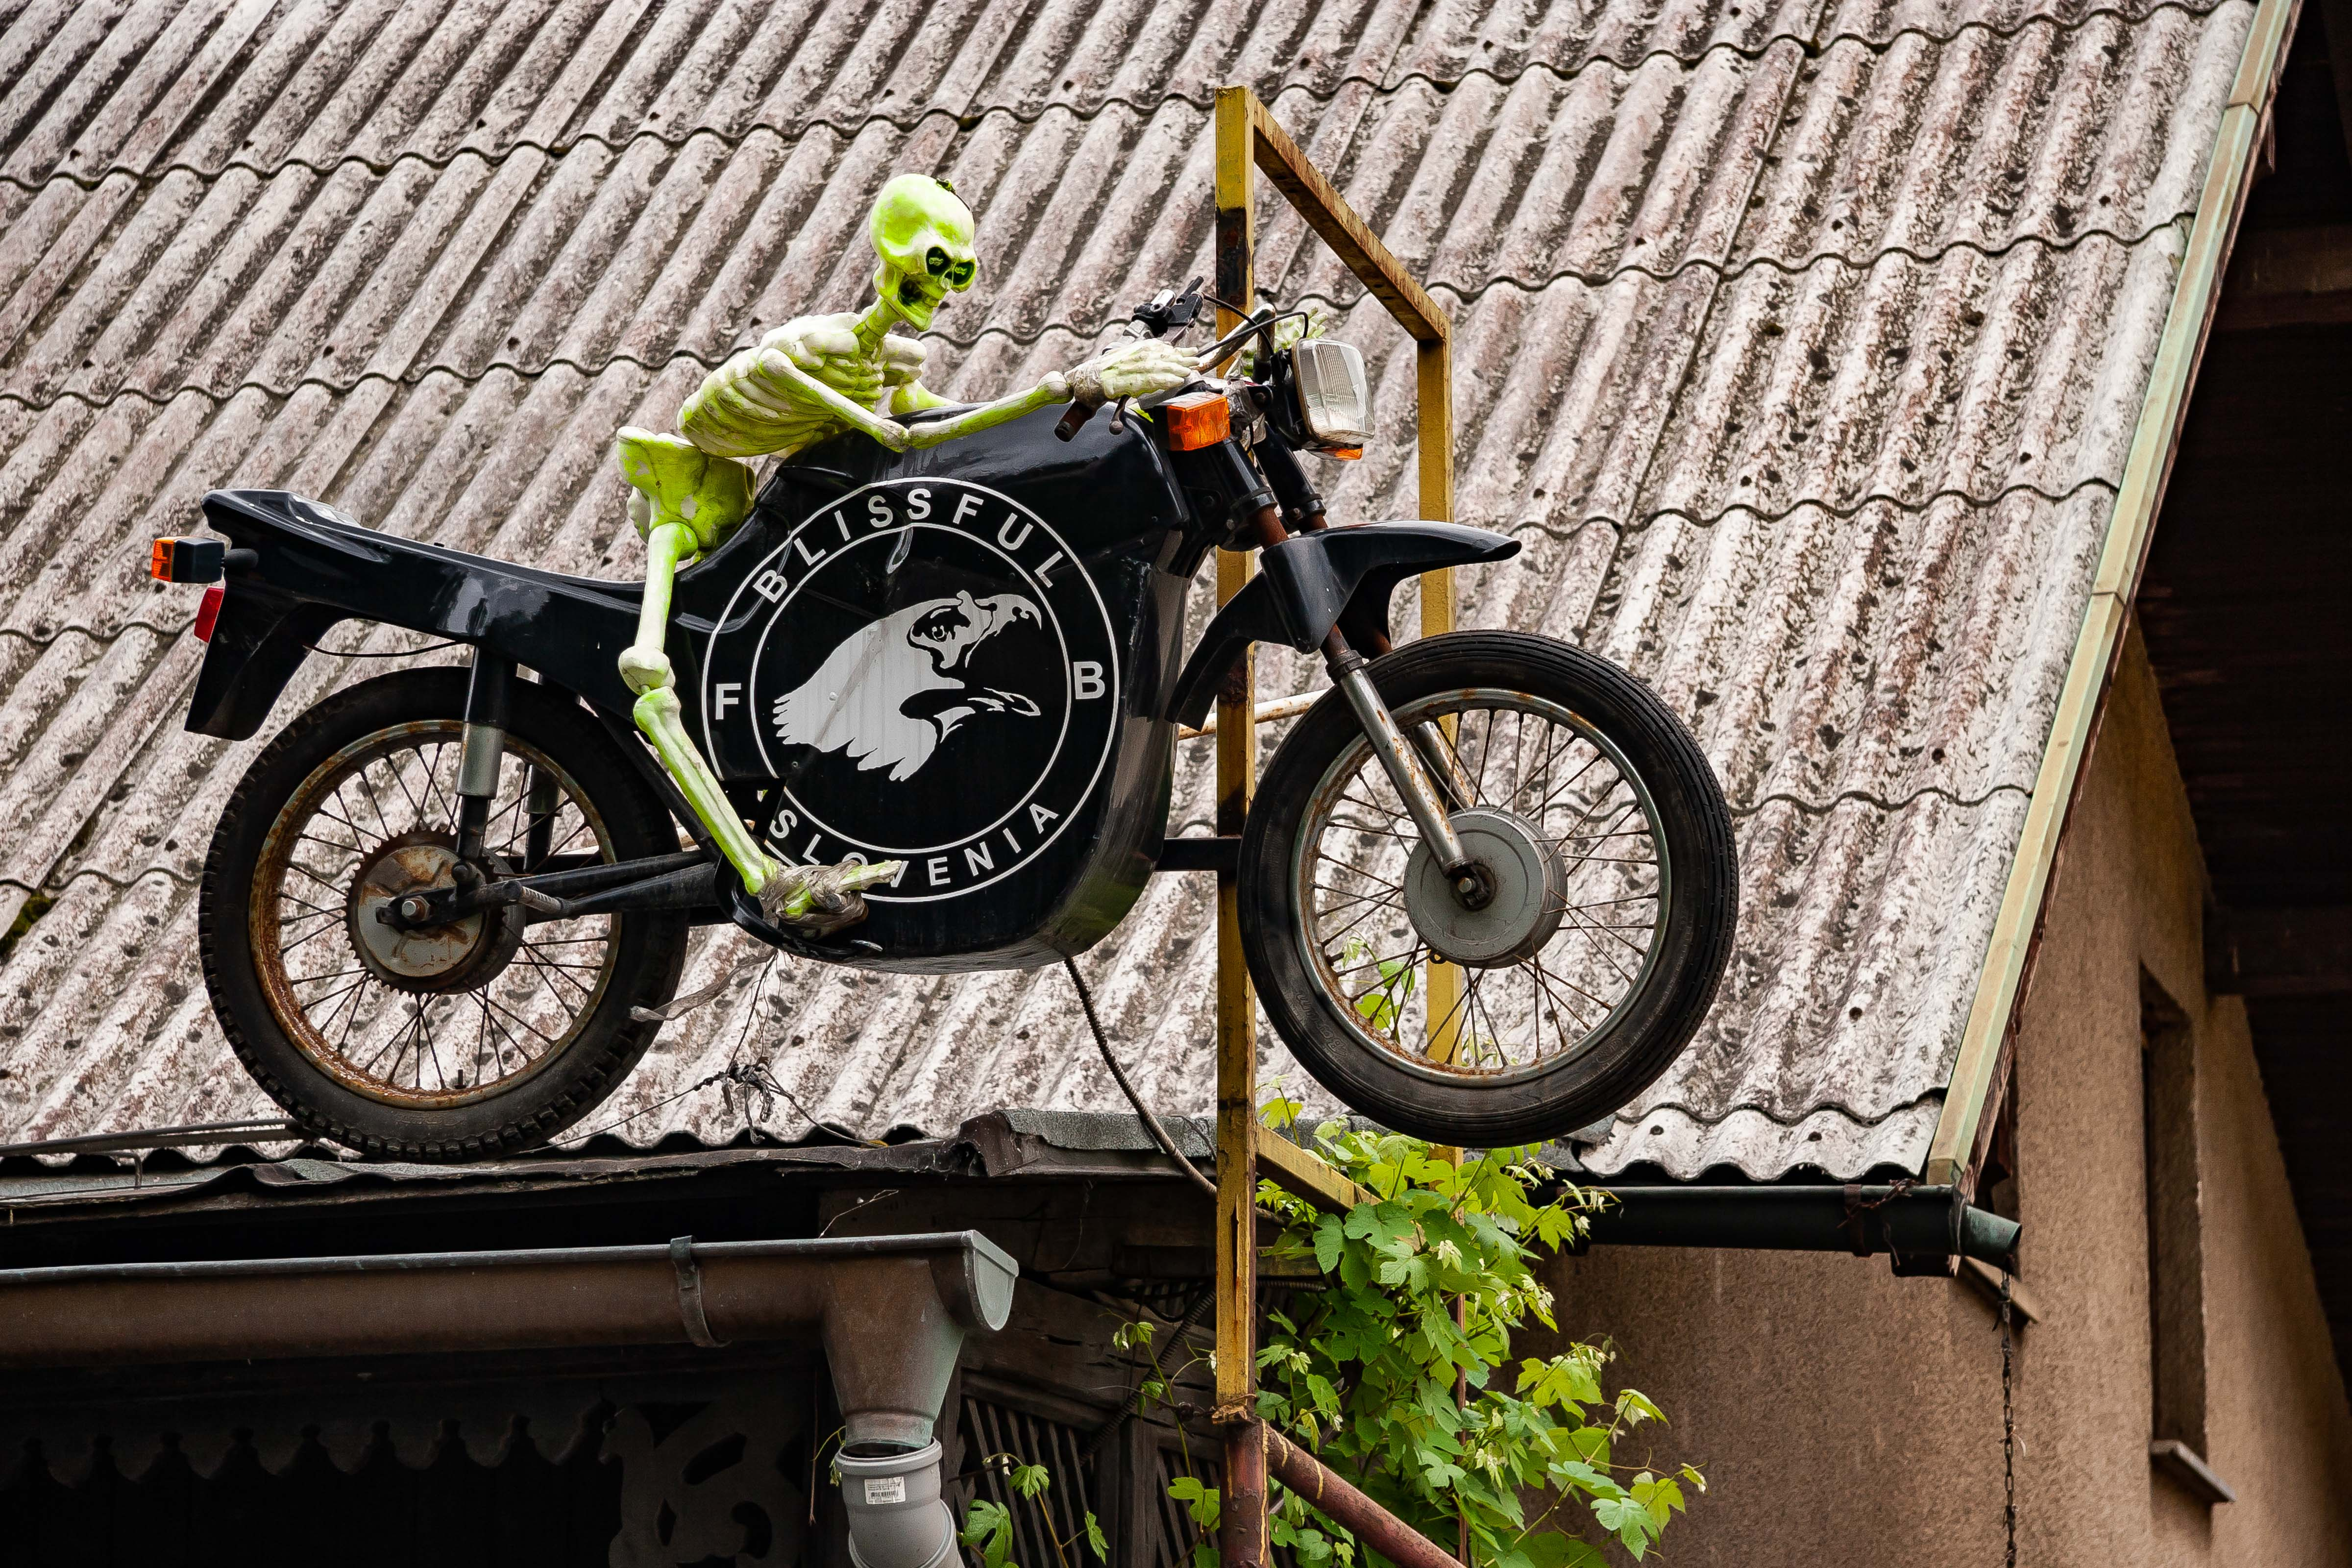 Slovenia, Store Prov, Motorcycle Of Death, 2006, IMG 7842